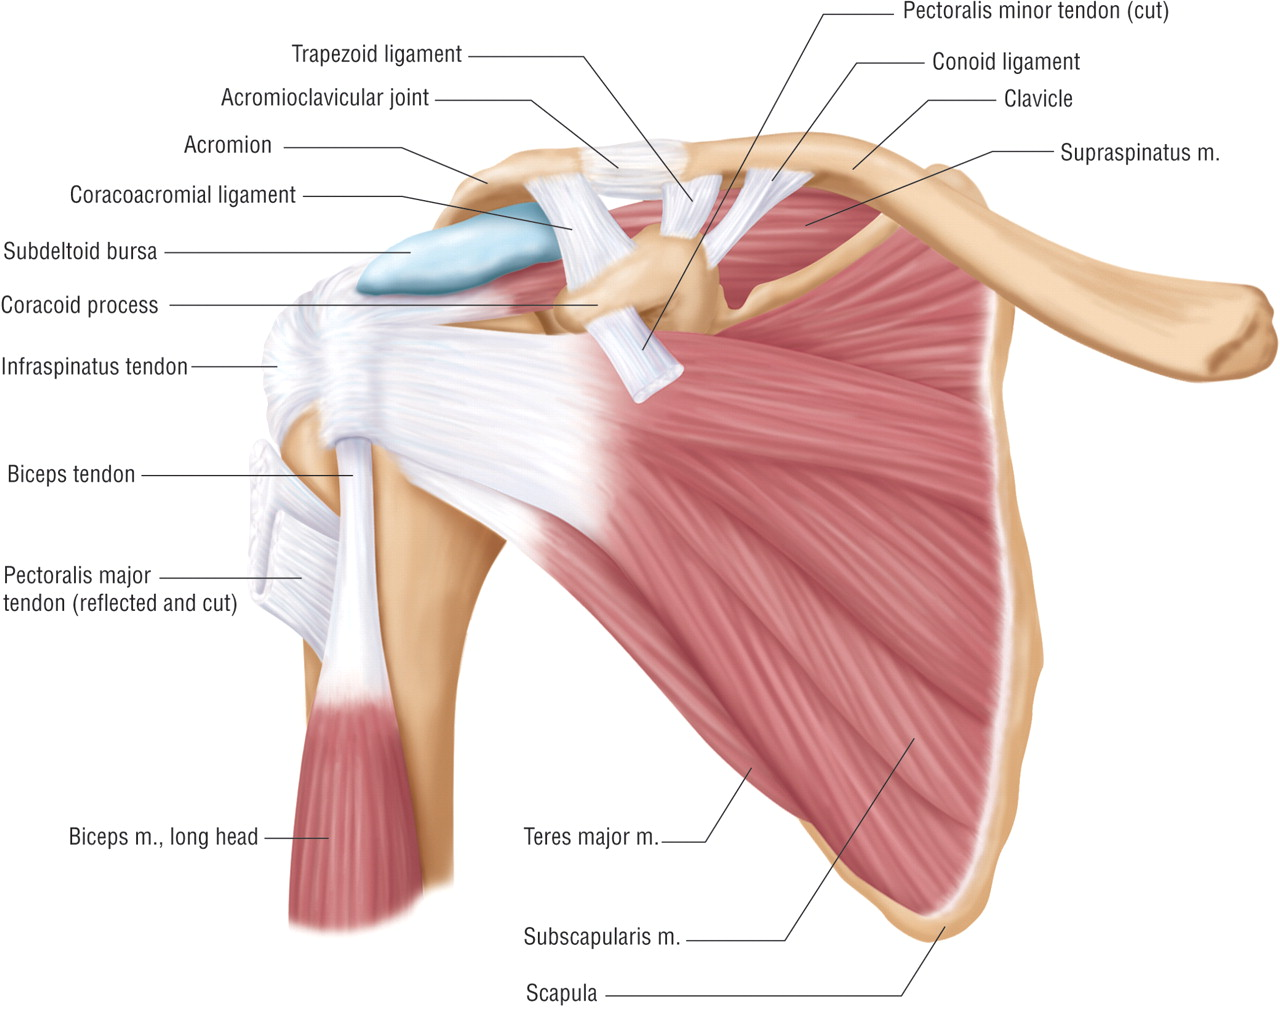 blank scapula diagram wiring western snow plow basic shoulder anatomy patients crossing oceans